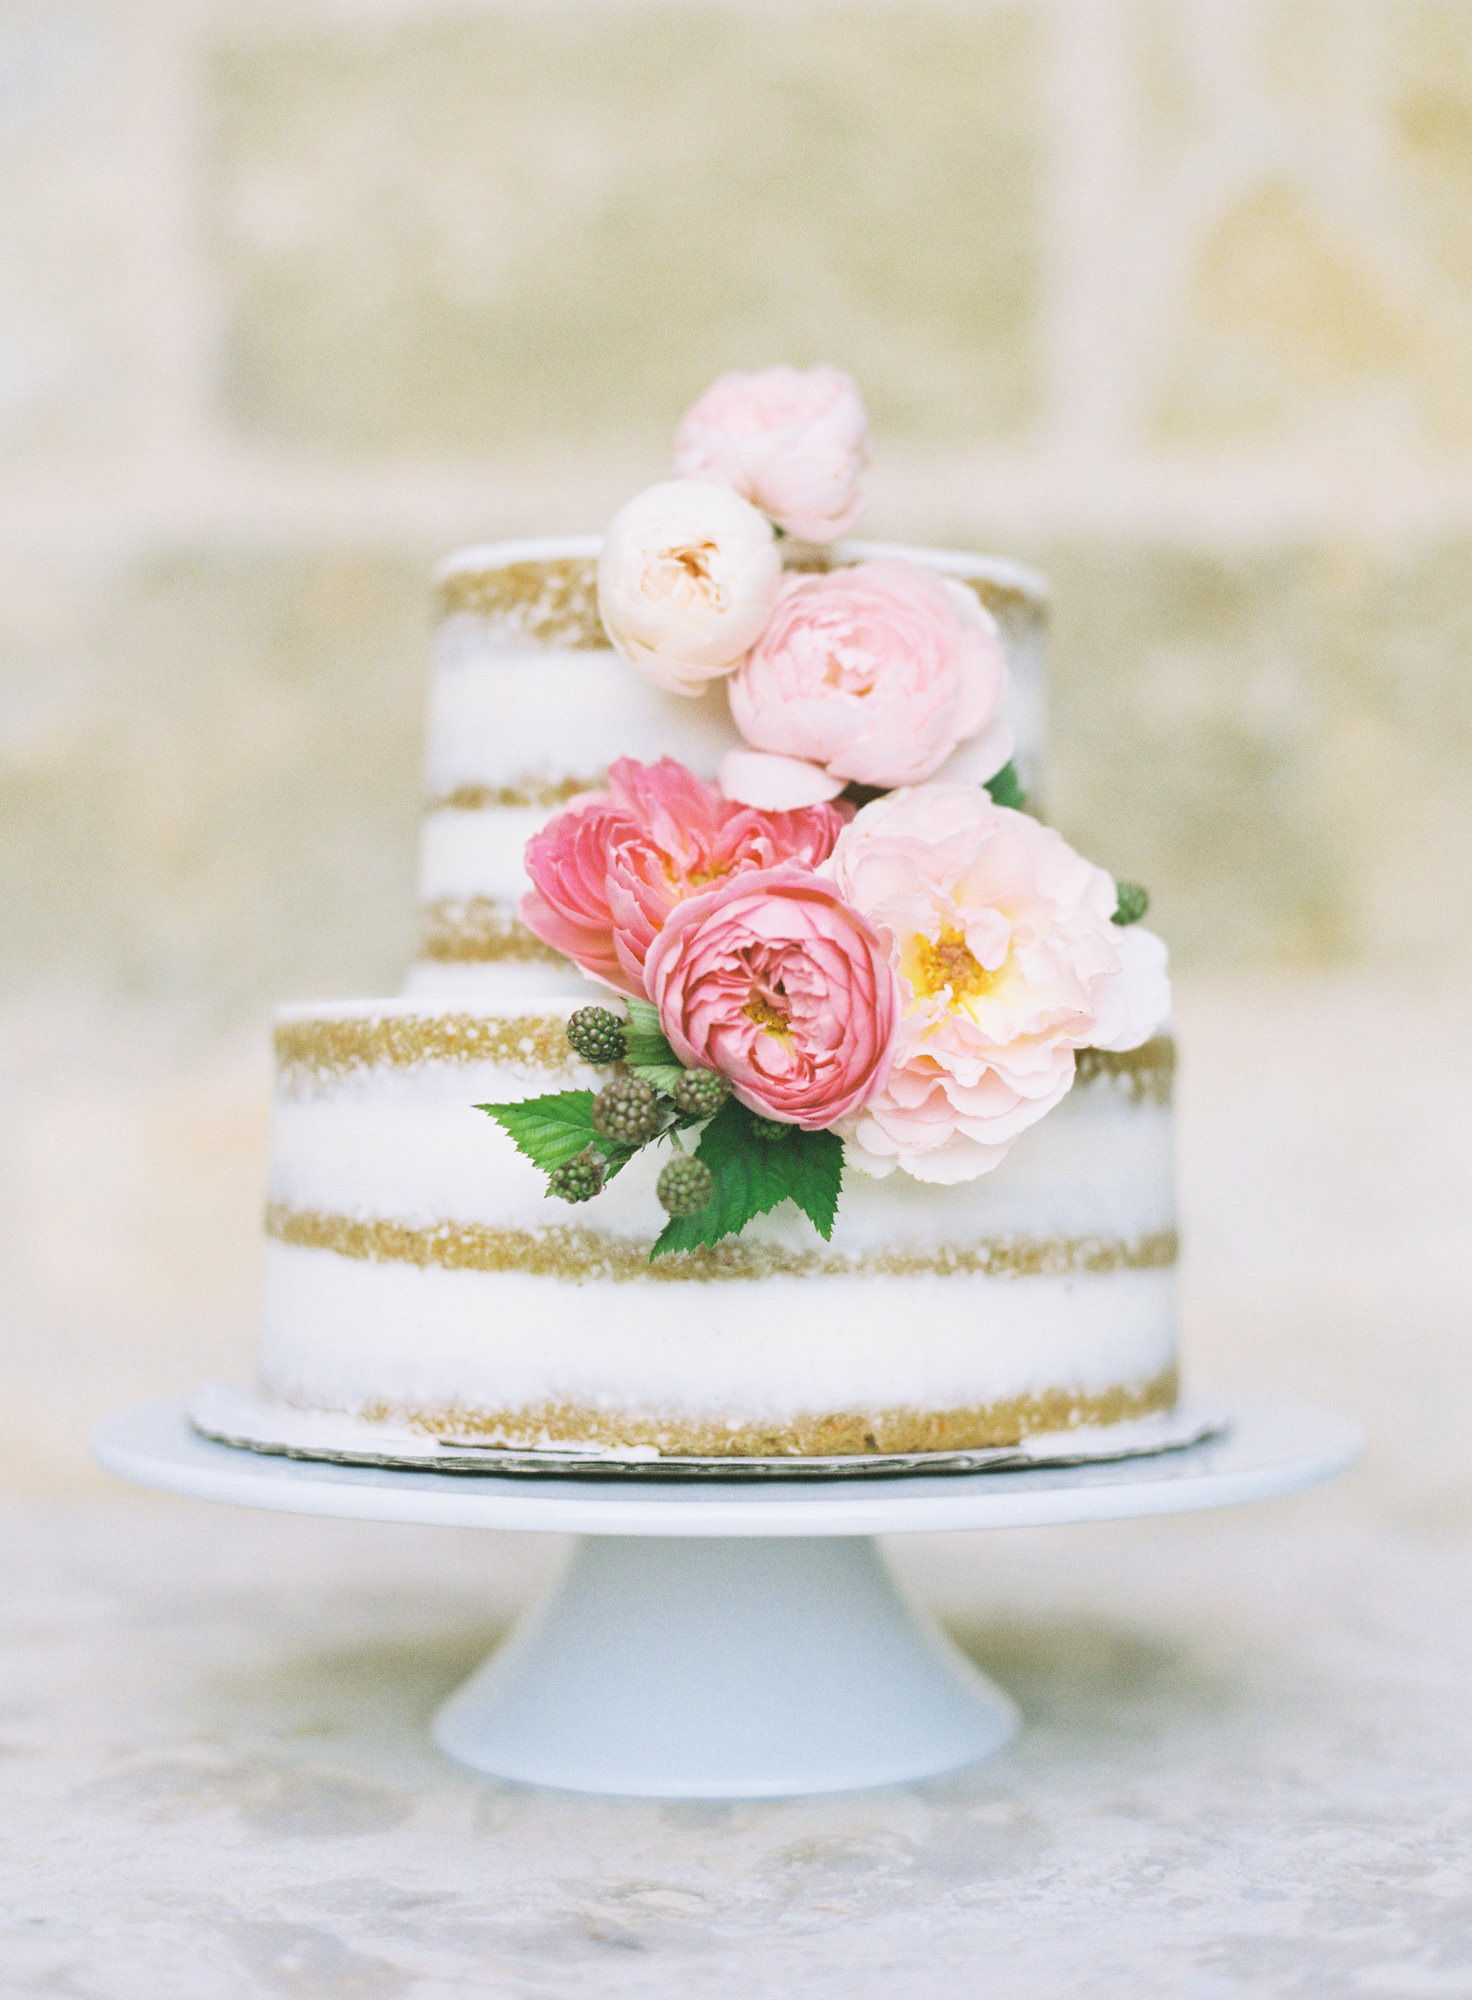 worlds-best-wedding-photos-wedding-cake-with-pink-white-roses-jen-huang-los-angeles-wedding-photographer